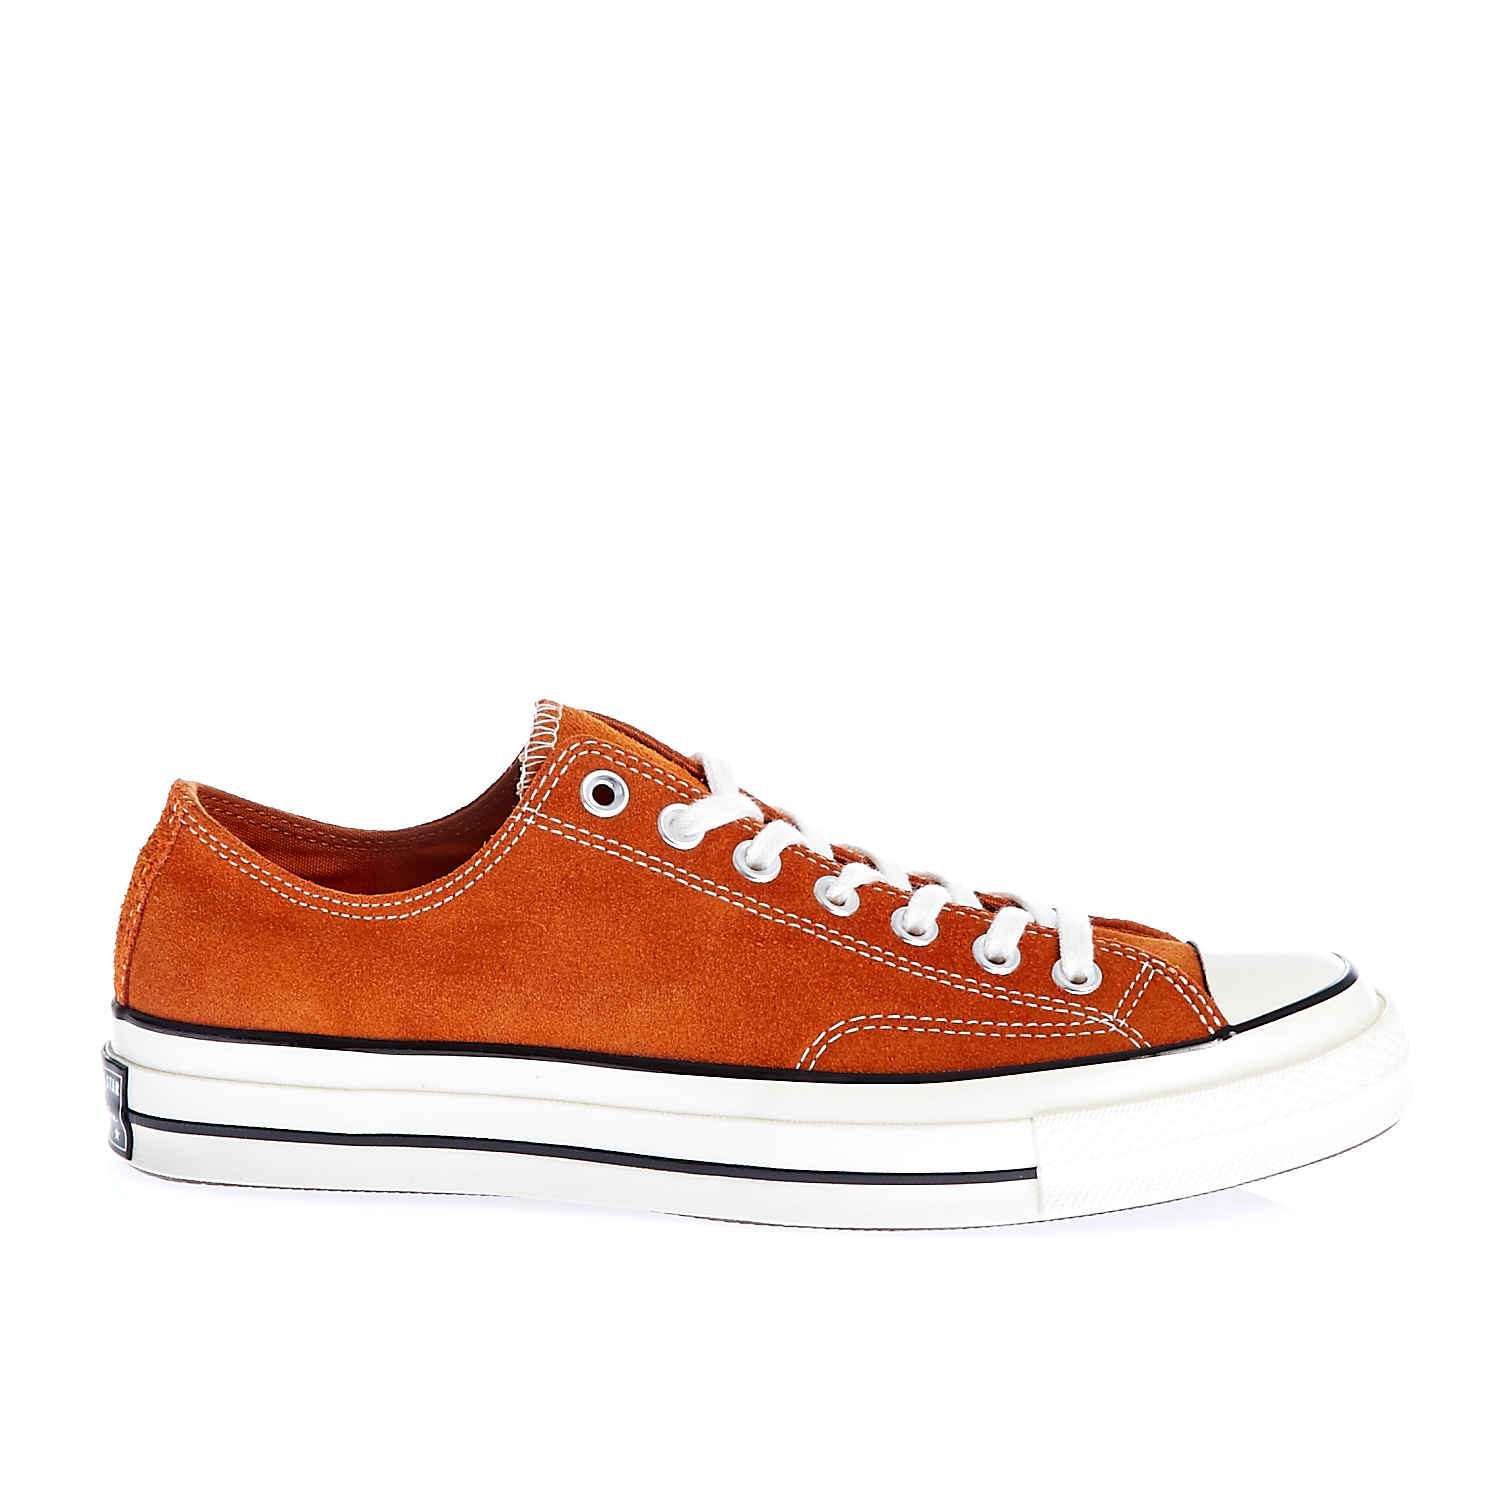 CONVERSE – Unisex παπούτσια Chuck Taylor All Star '70 Ox πορτοκαλί